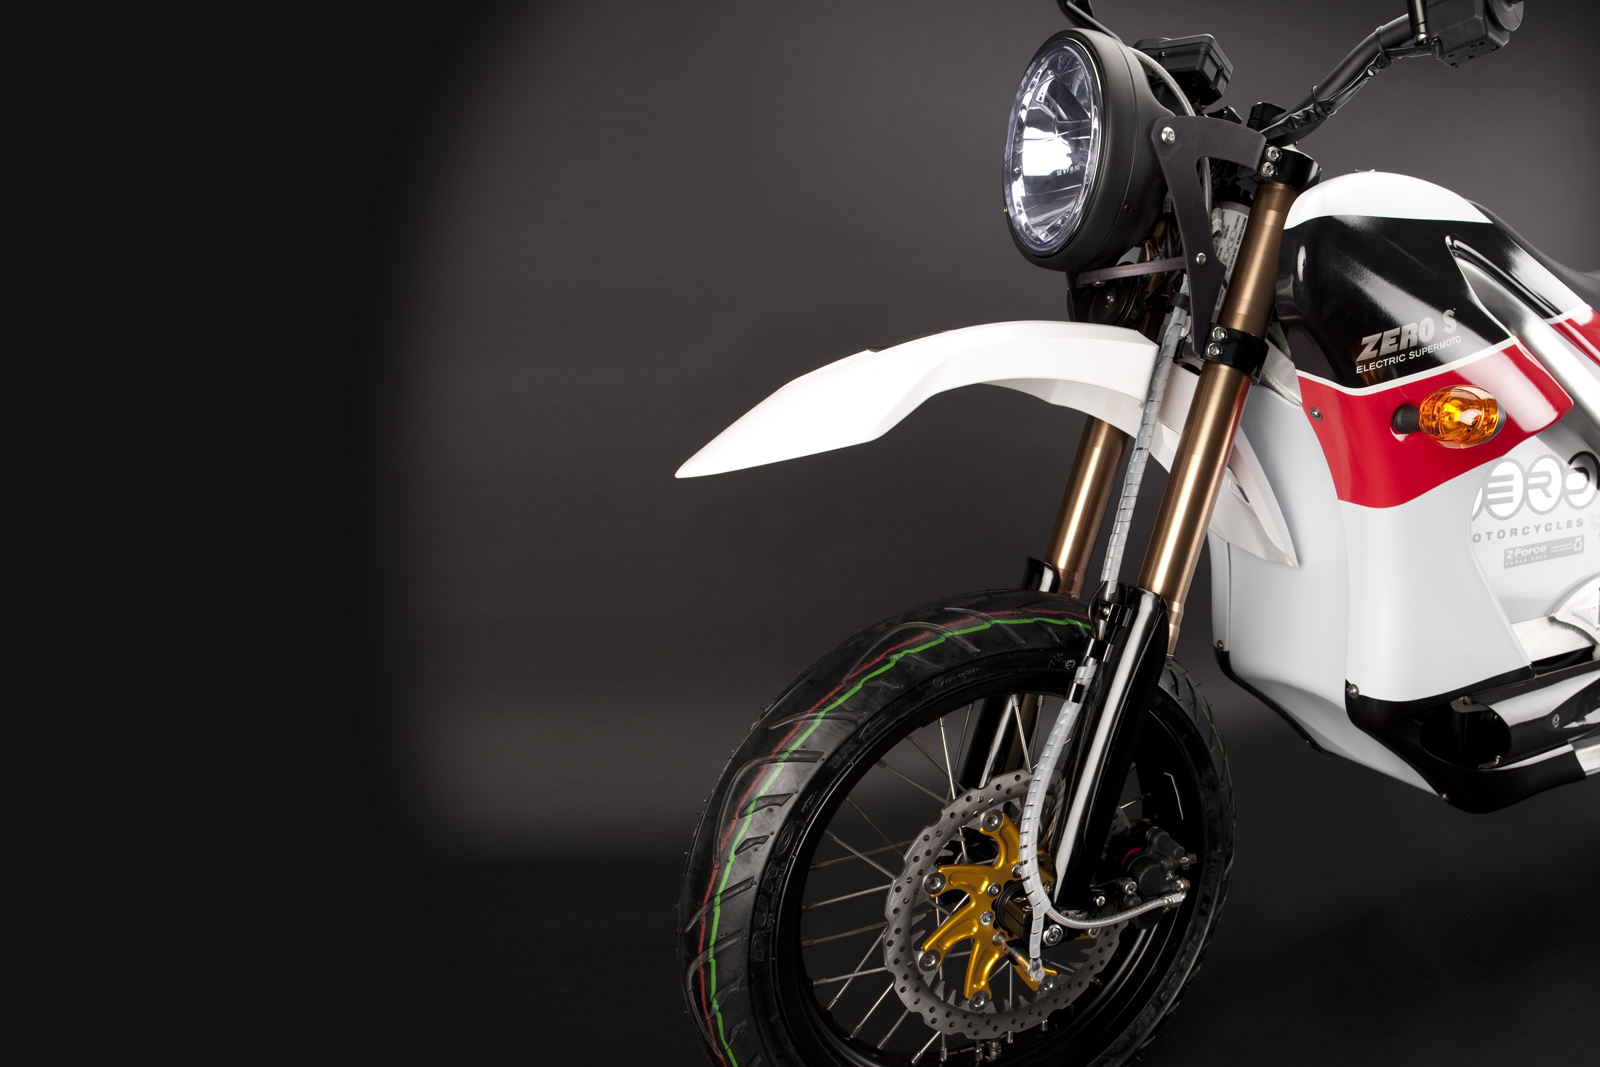 '.2010 Zero S Electric Motorcycle: Front Fork.'